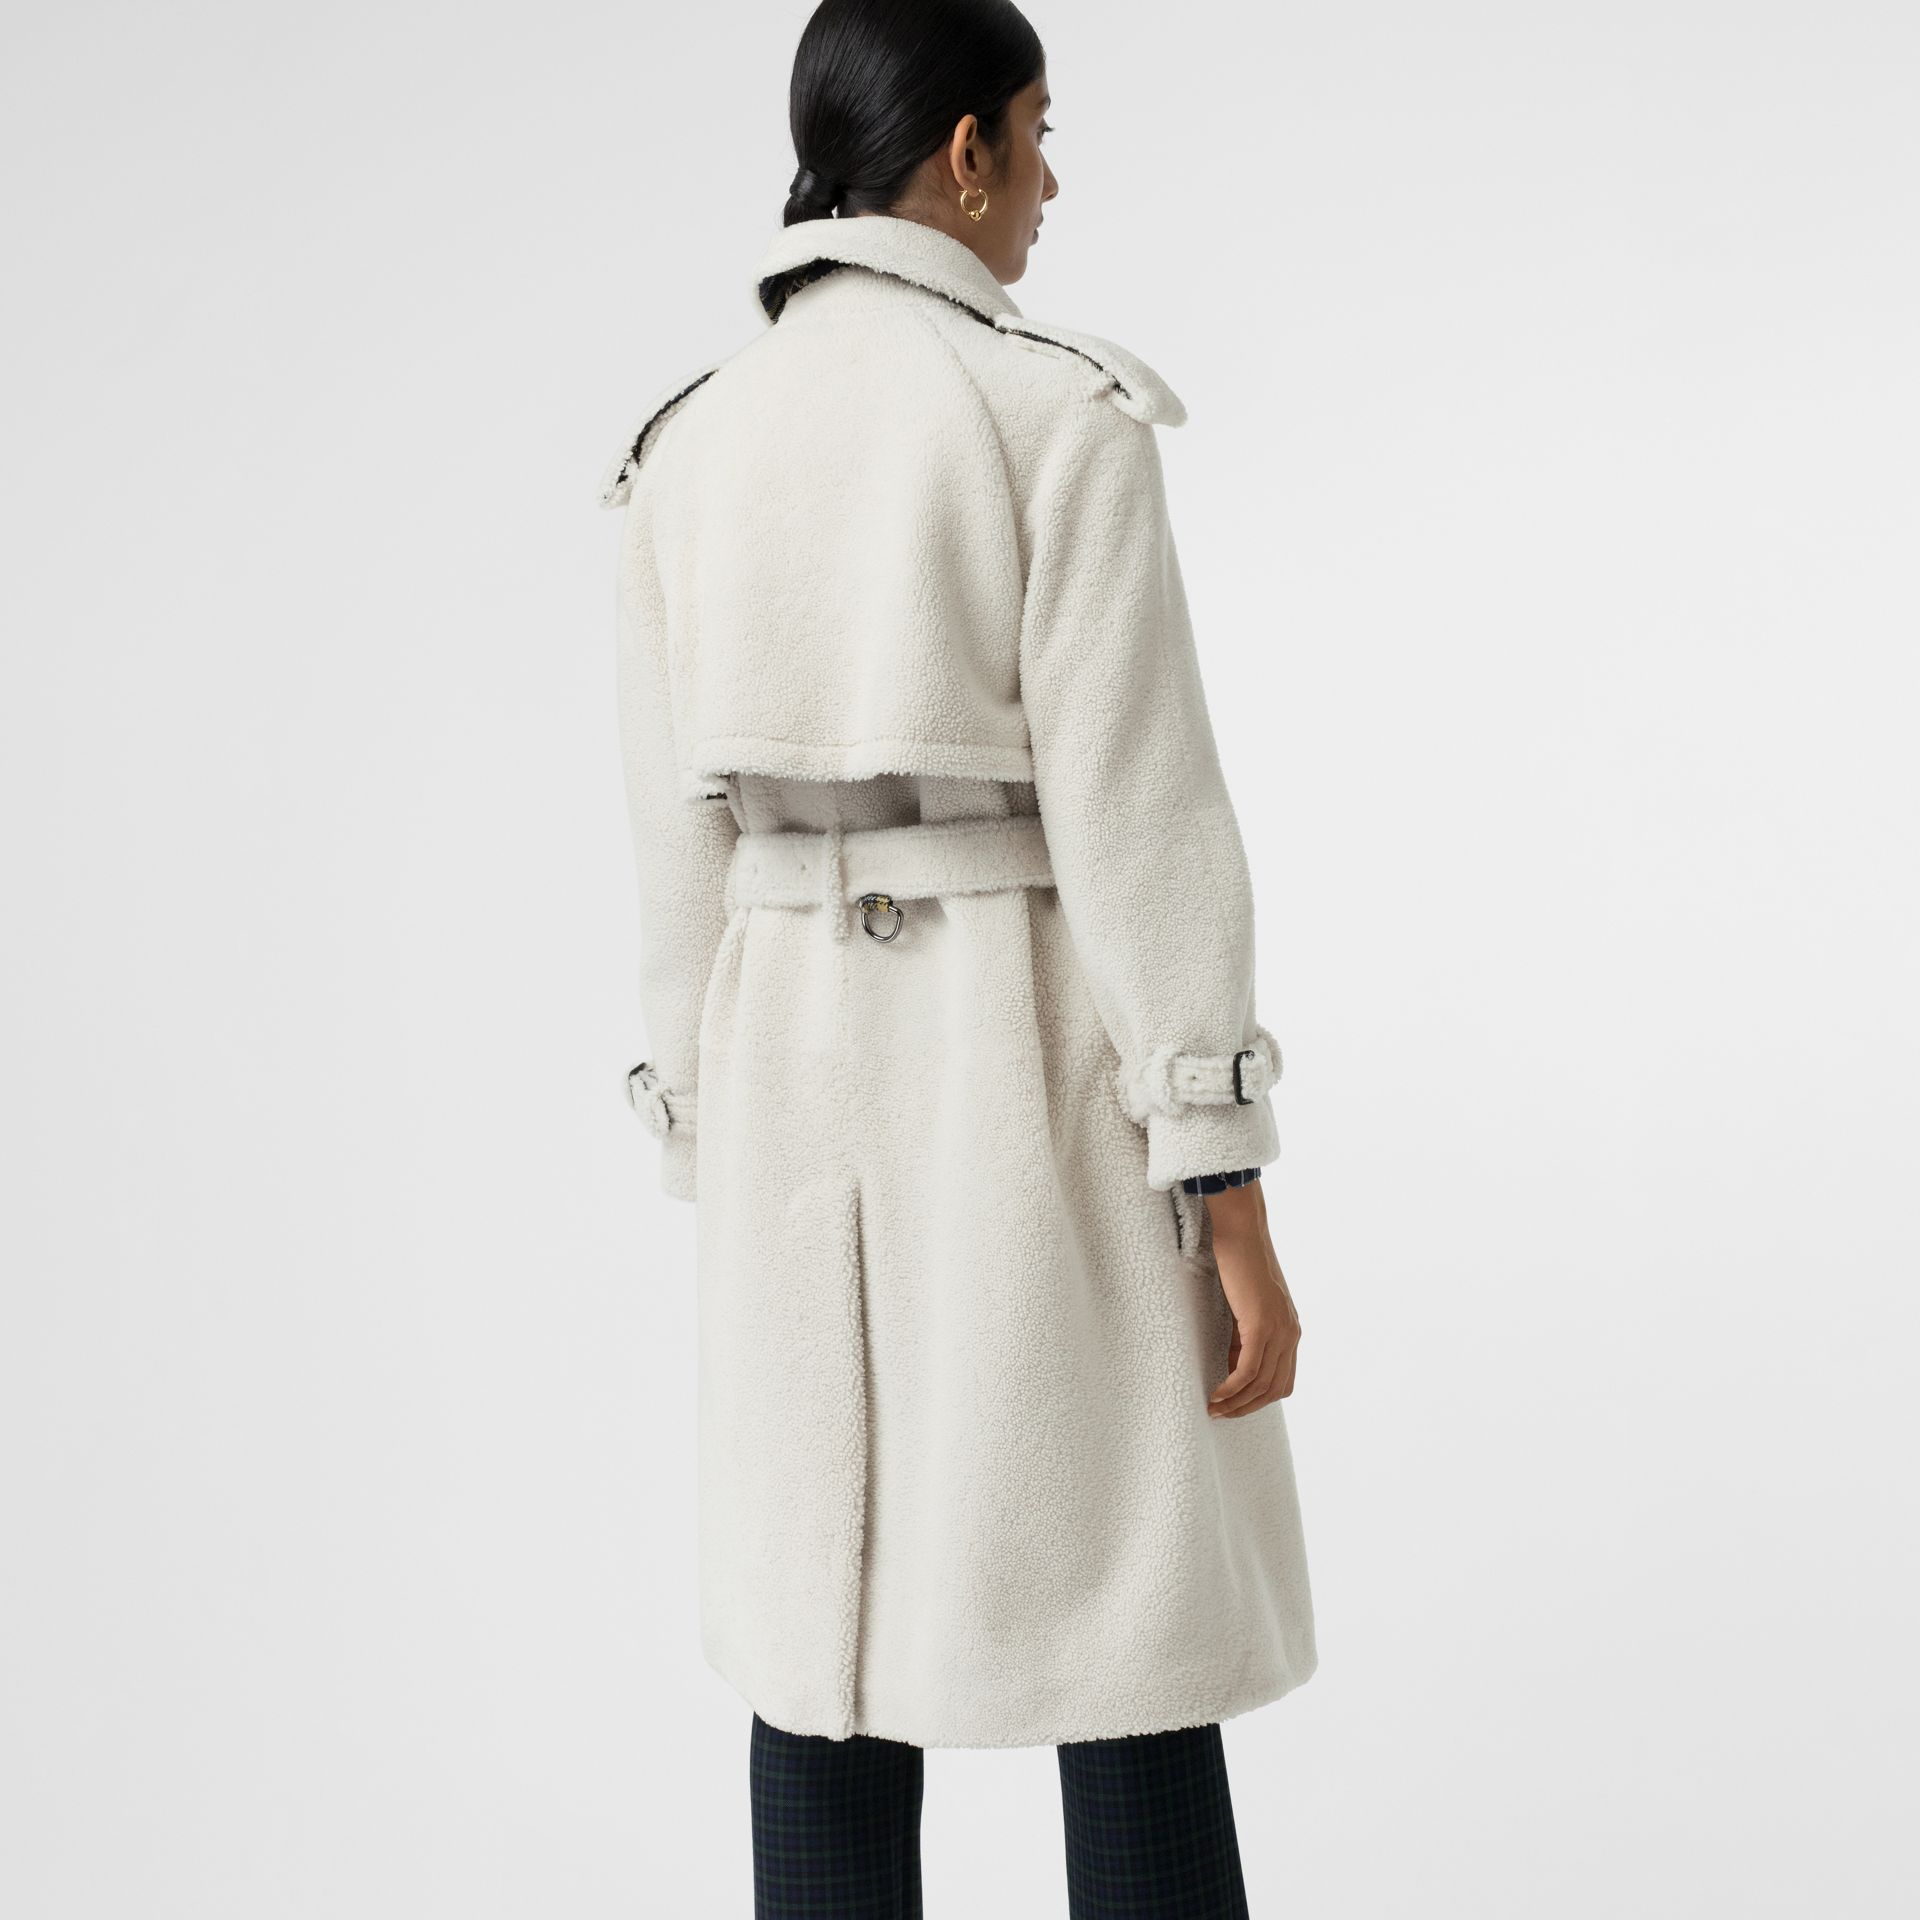 Tartan-lined Shearling Trench Coat in Off White - Women | Burberry - gallery image 2